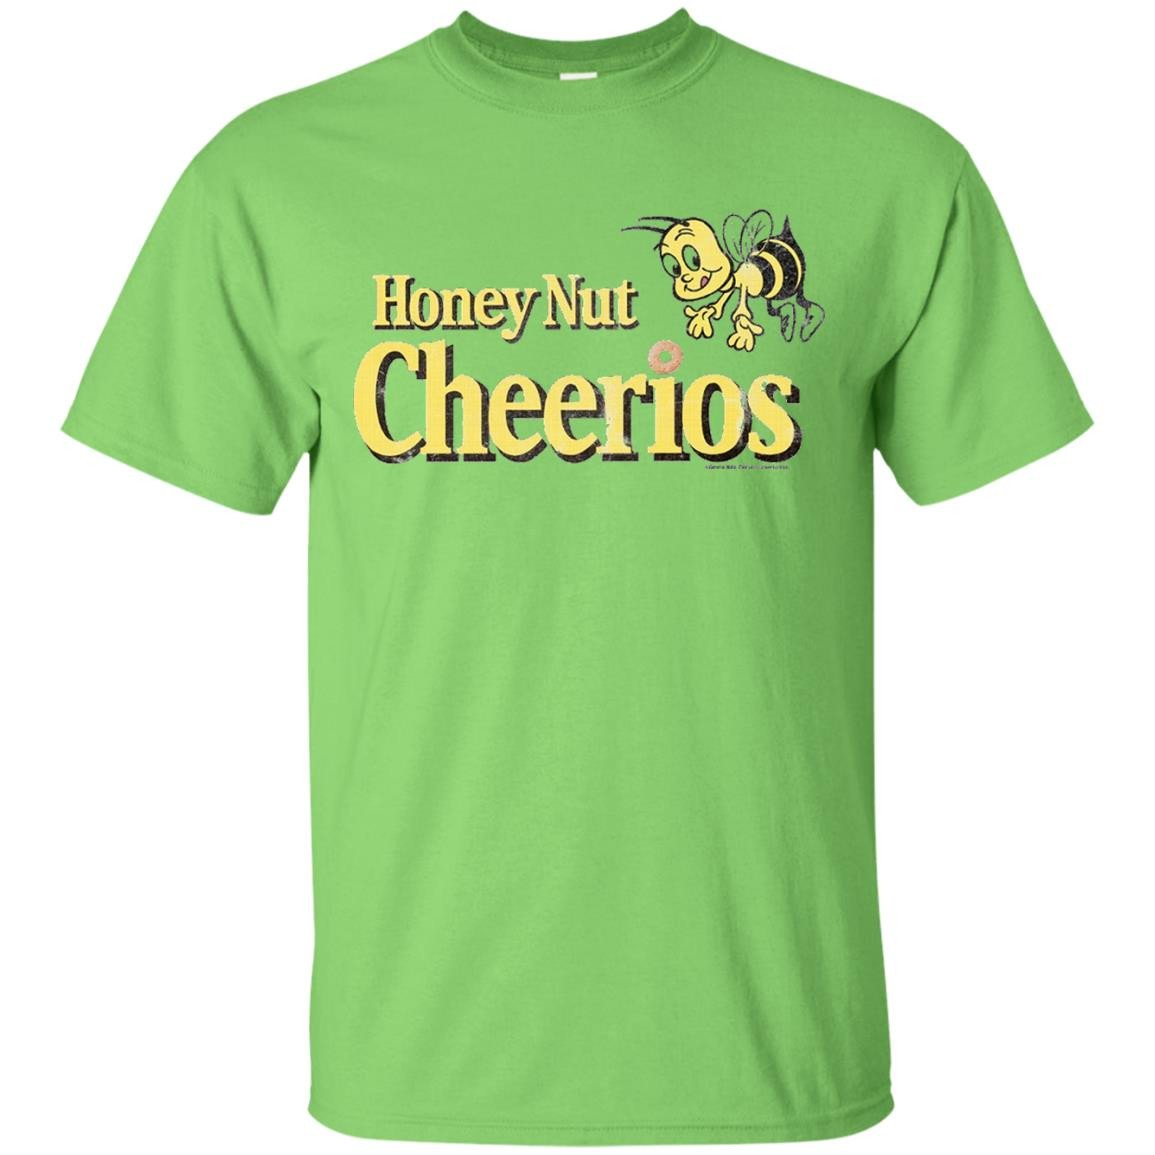 Honey Nut Cheerios T-Shirt Classic Look style 15492